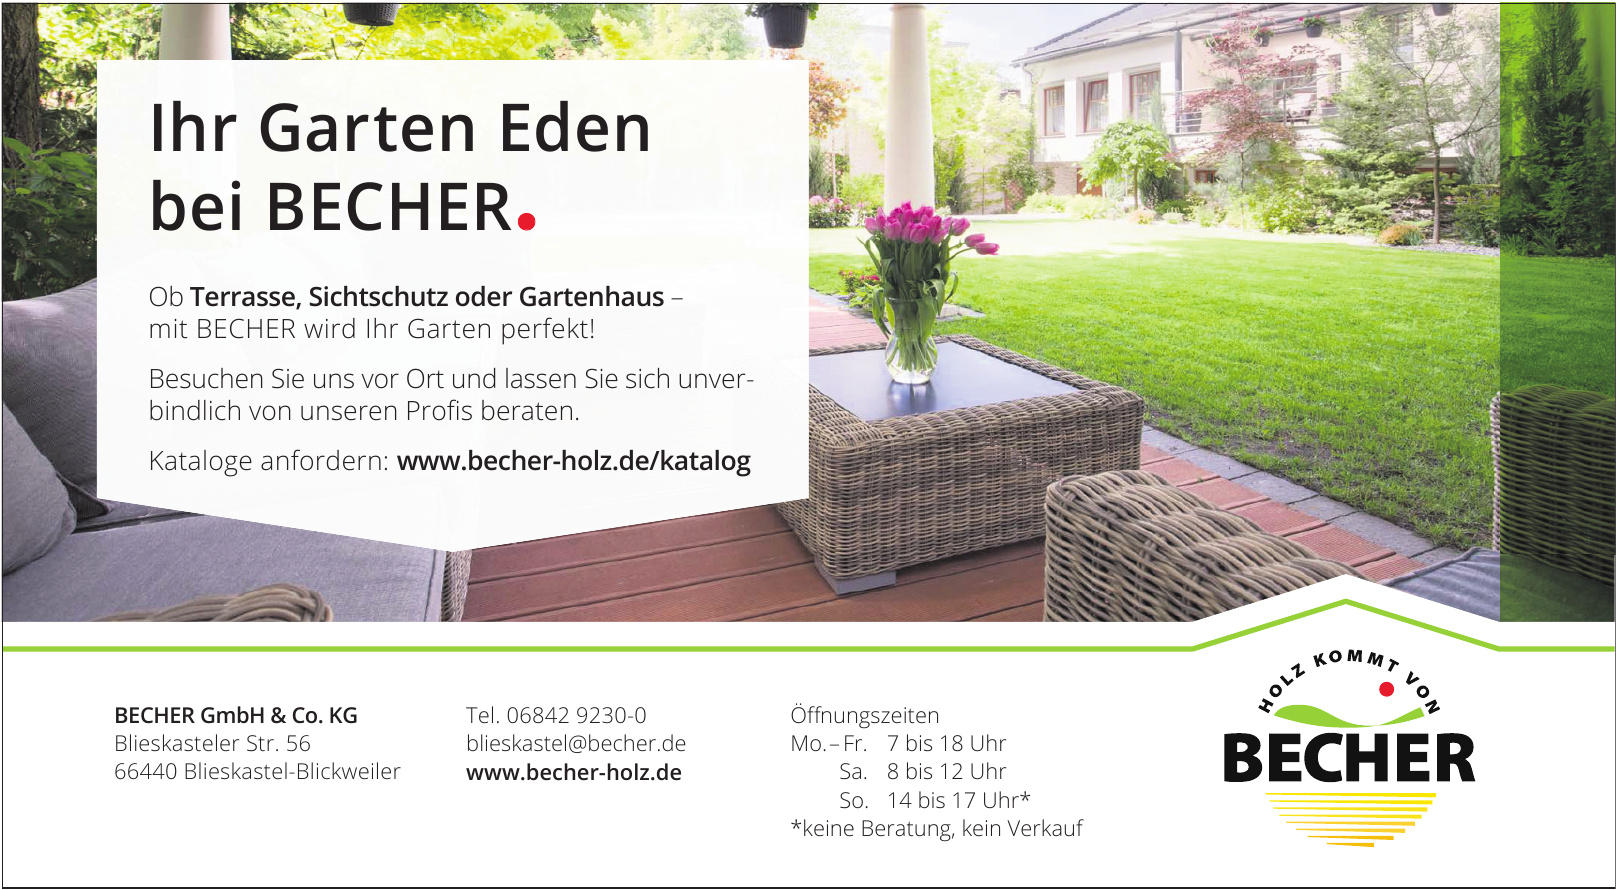 Becher GmbH & Co. KG